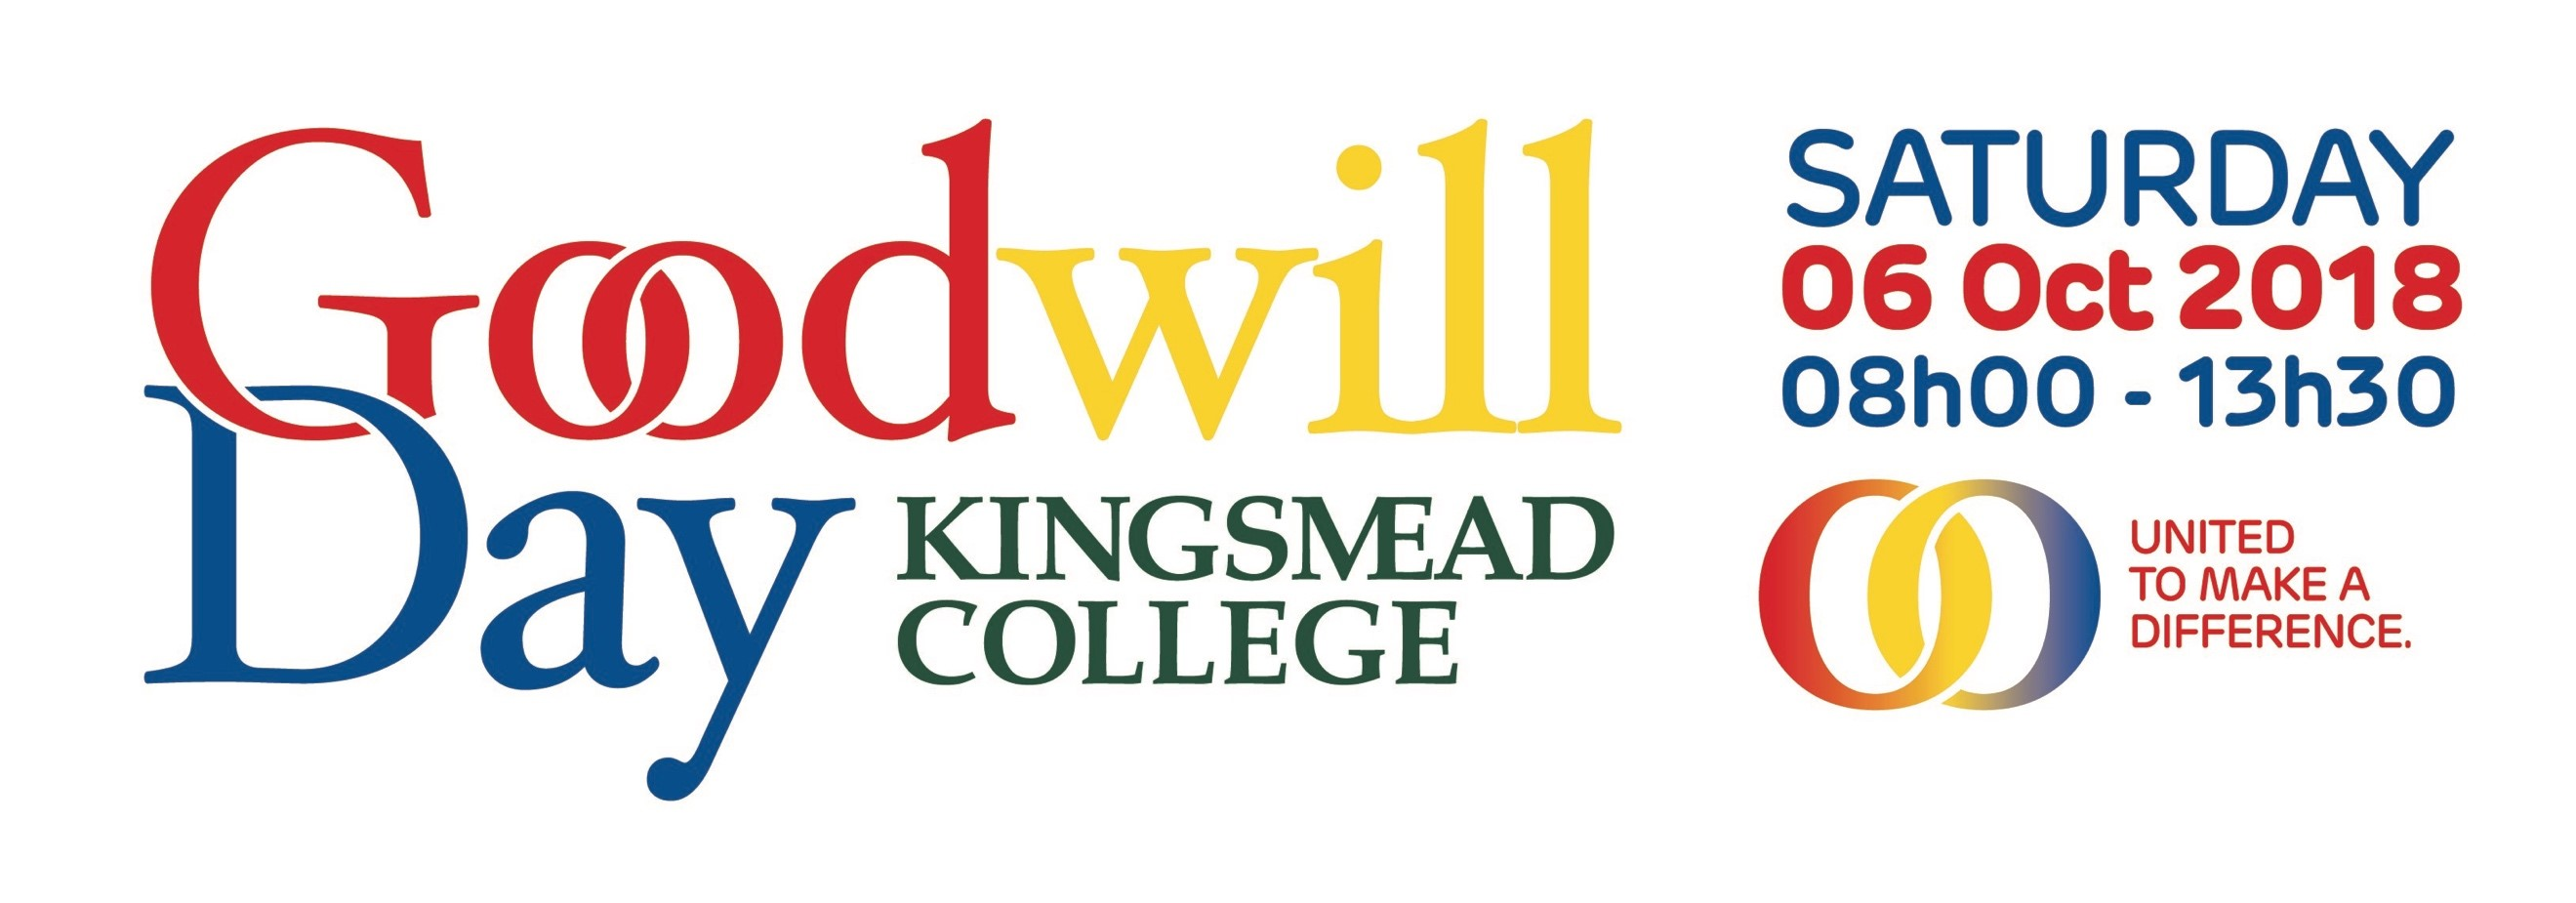 GG Kingsmead College